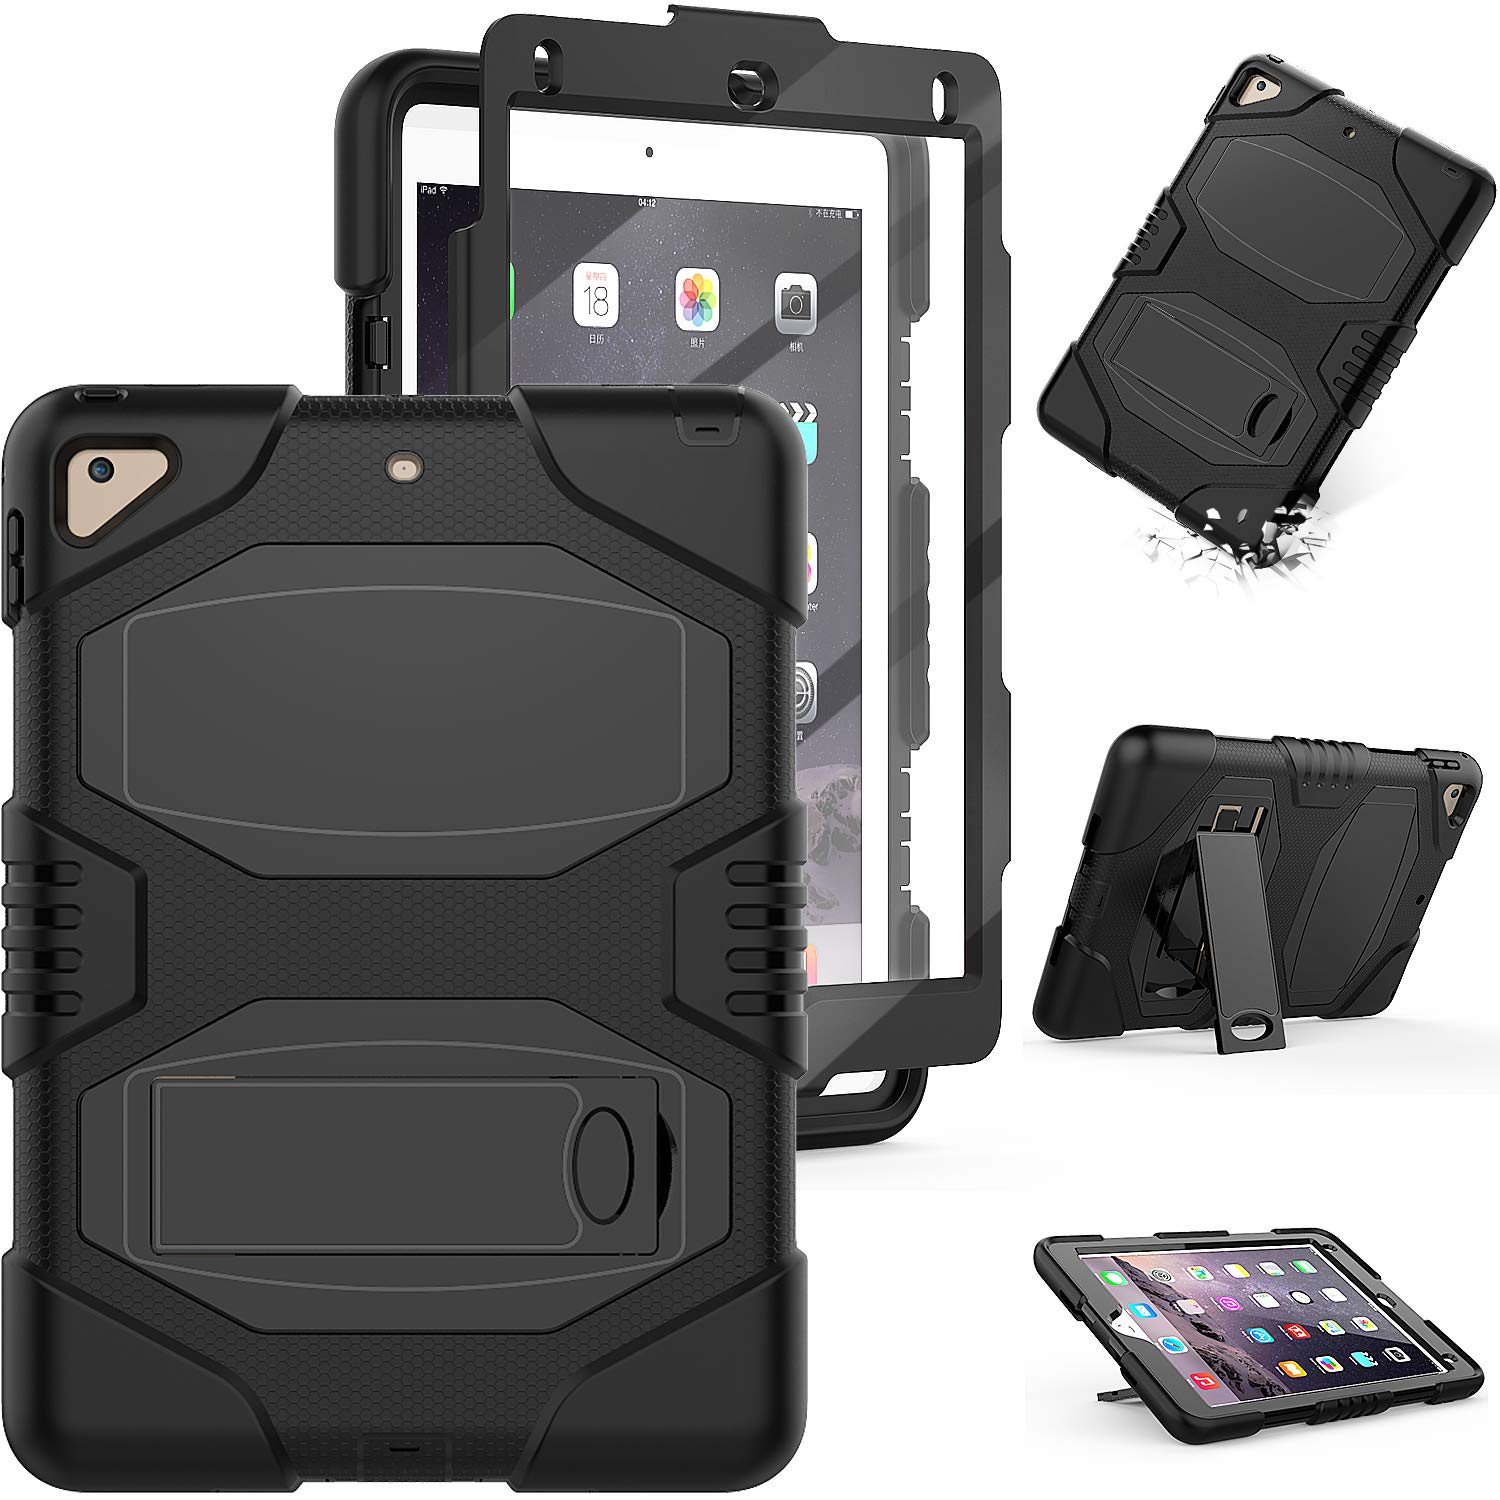 iPad 9.7 5th 6th Generation Case,iPad Pro 9.7 Case, iPad Air 2 Case,Full Body Hybrid Shockproof Rugged Drop Protection Cover with Stand for iPad 9.7 5th 6th Generation A1893/A1954/A1822/A1823 (Black)